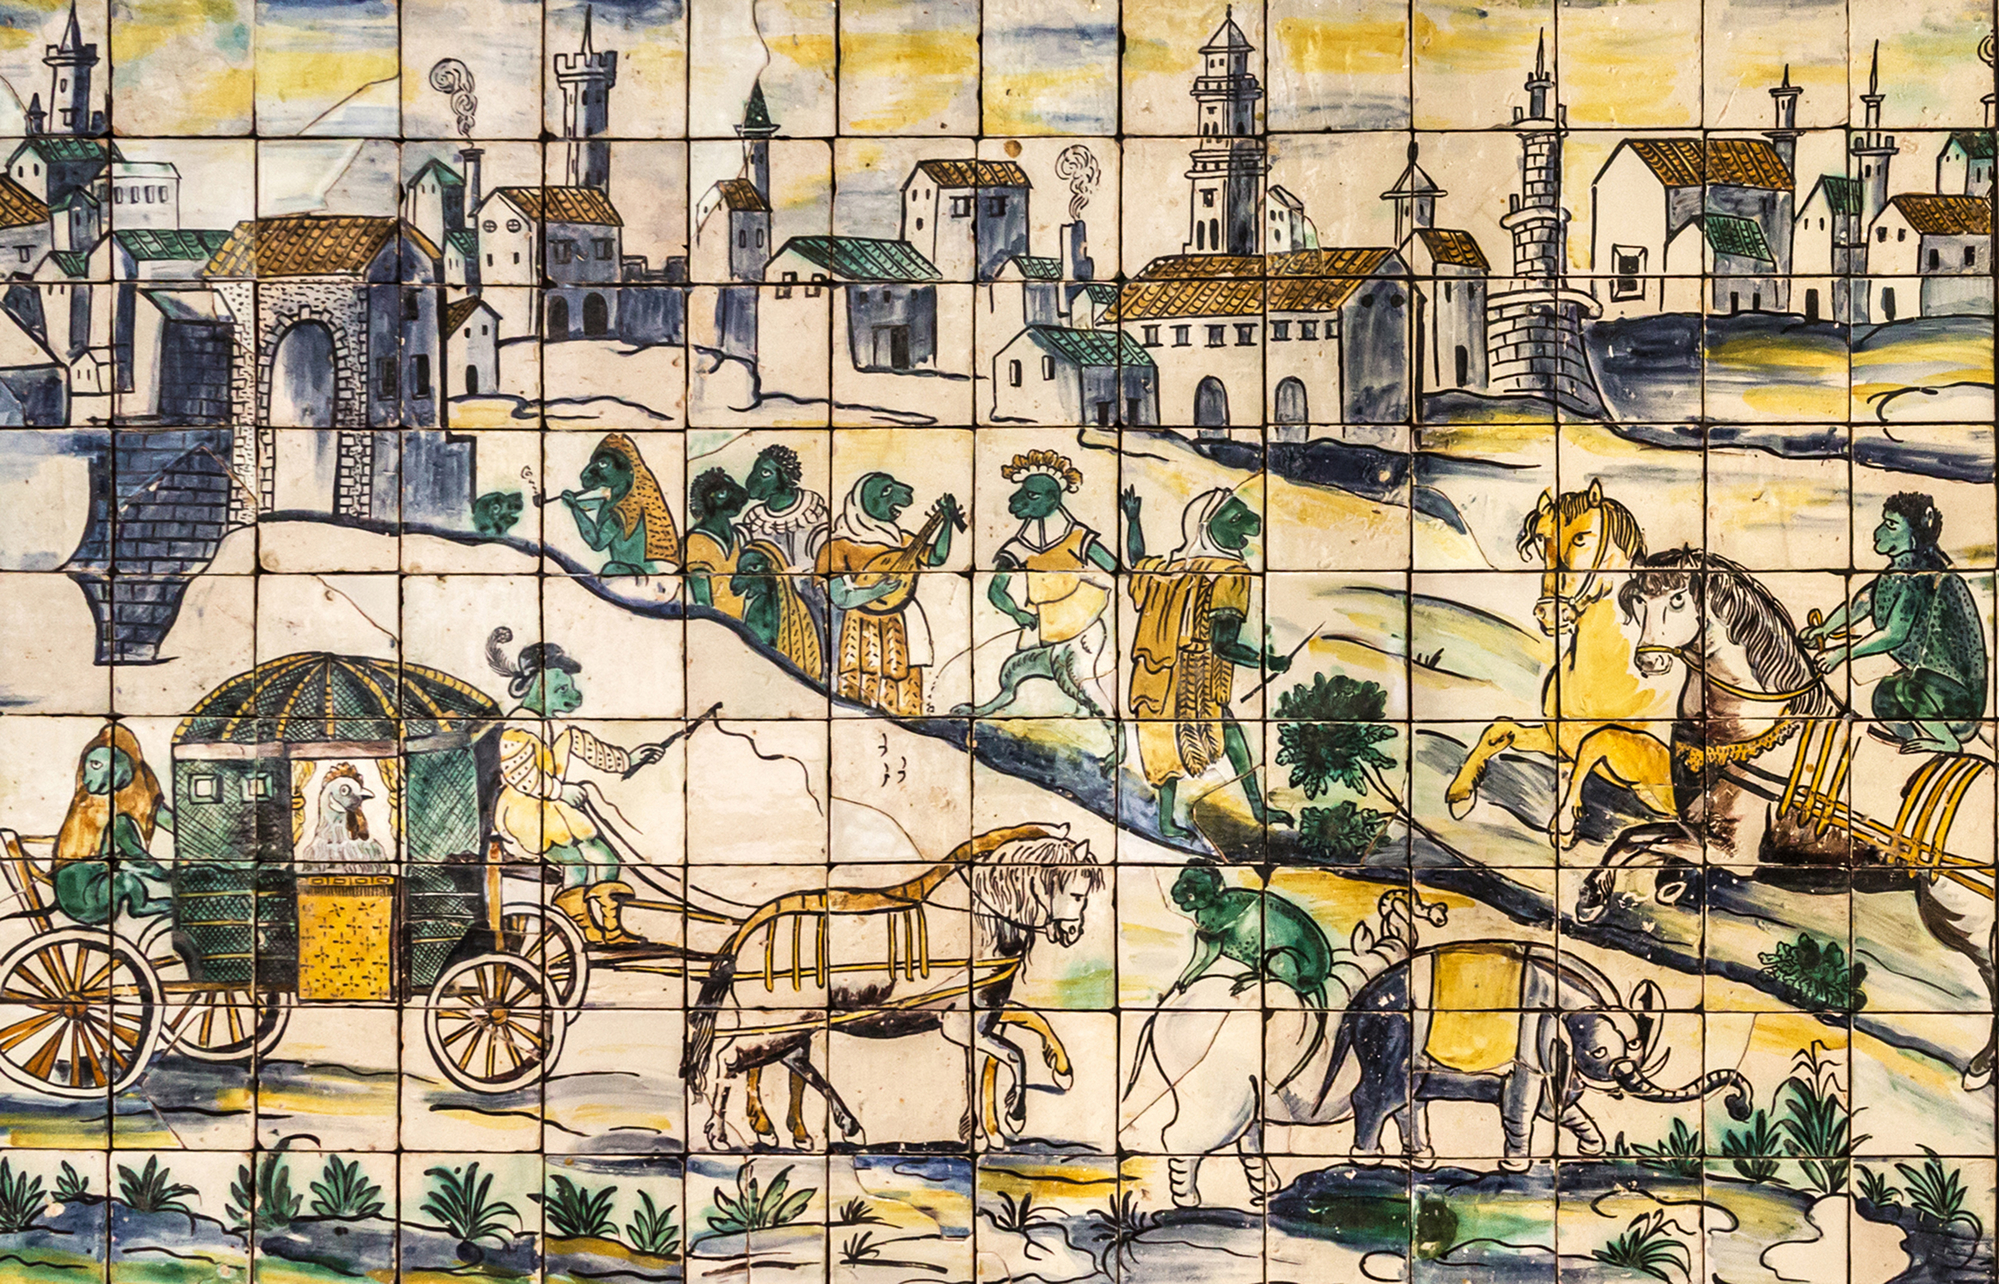 Tile Art Tales From Lisbon, Portugal's City of Light - Mozaico Blog